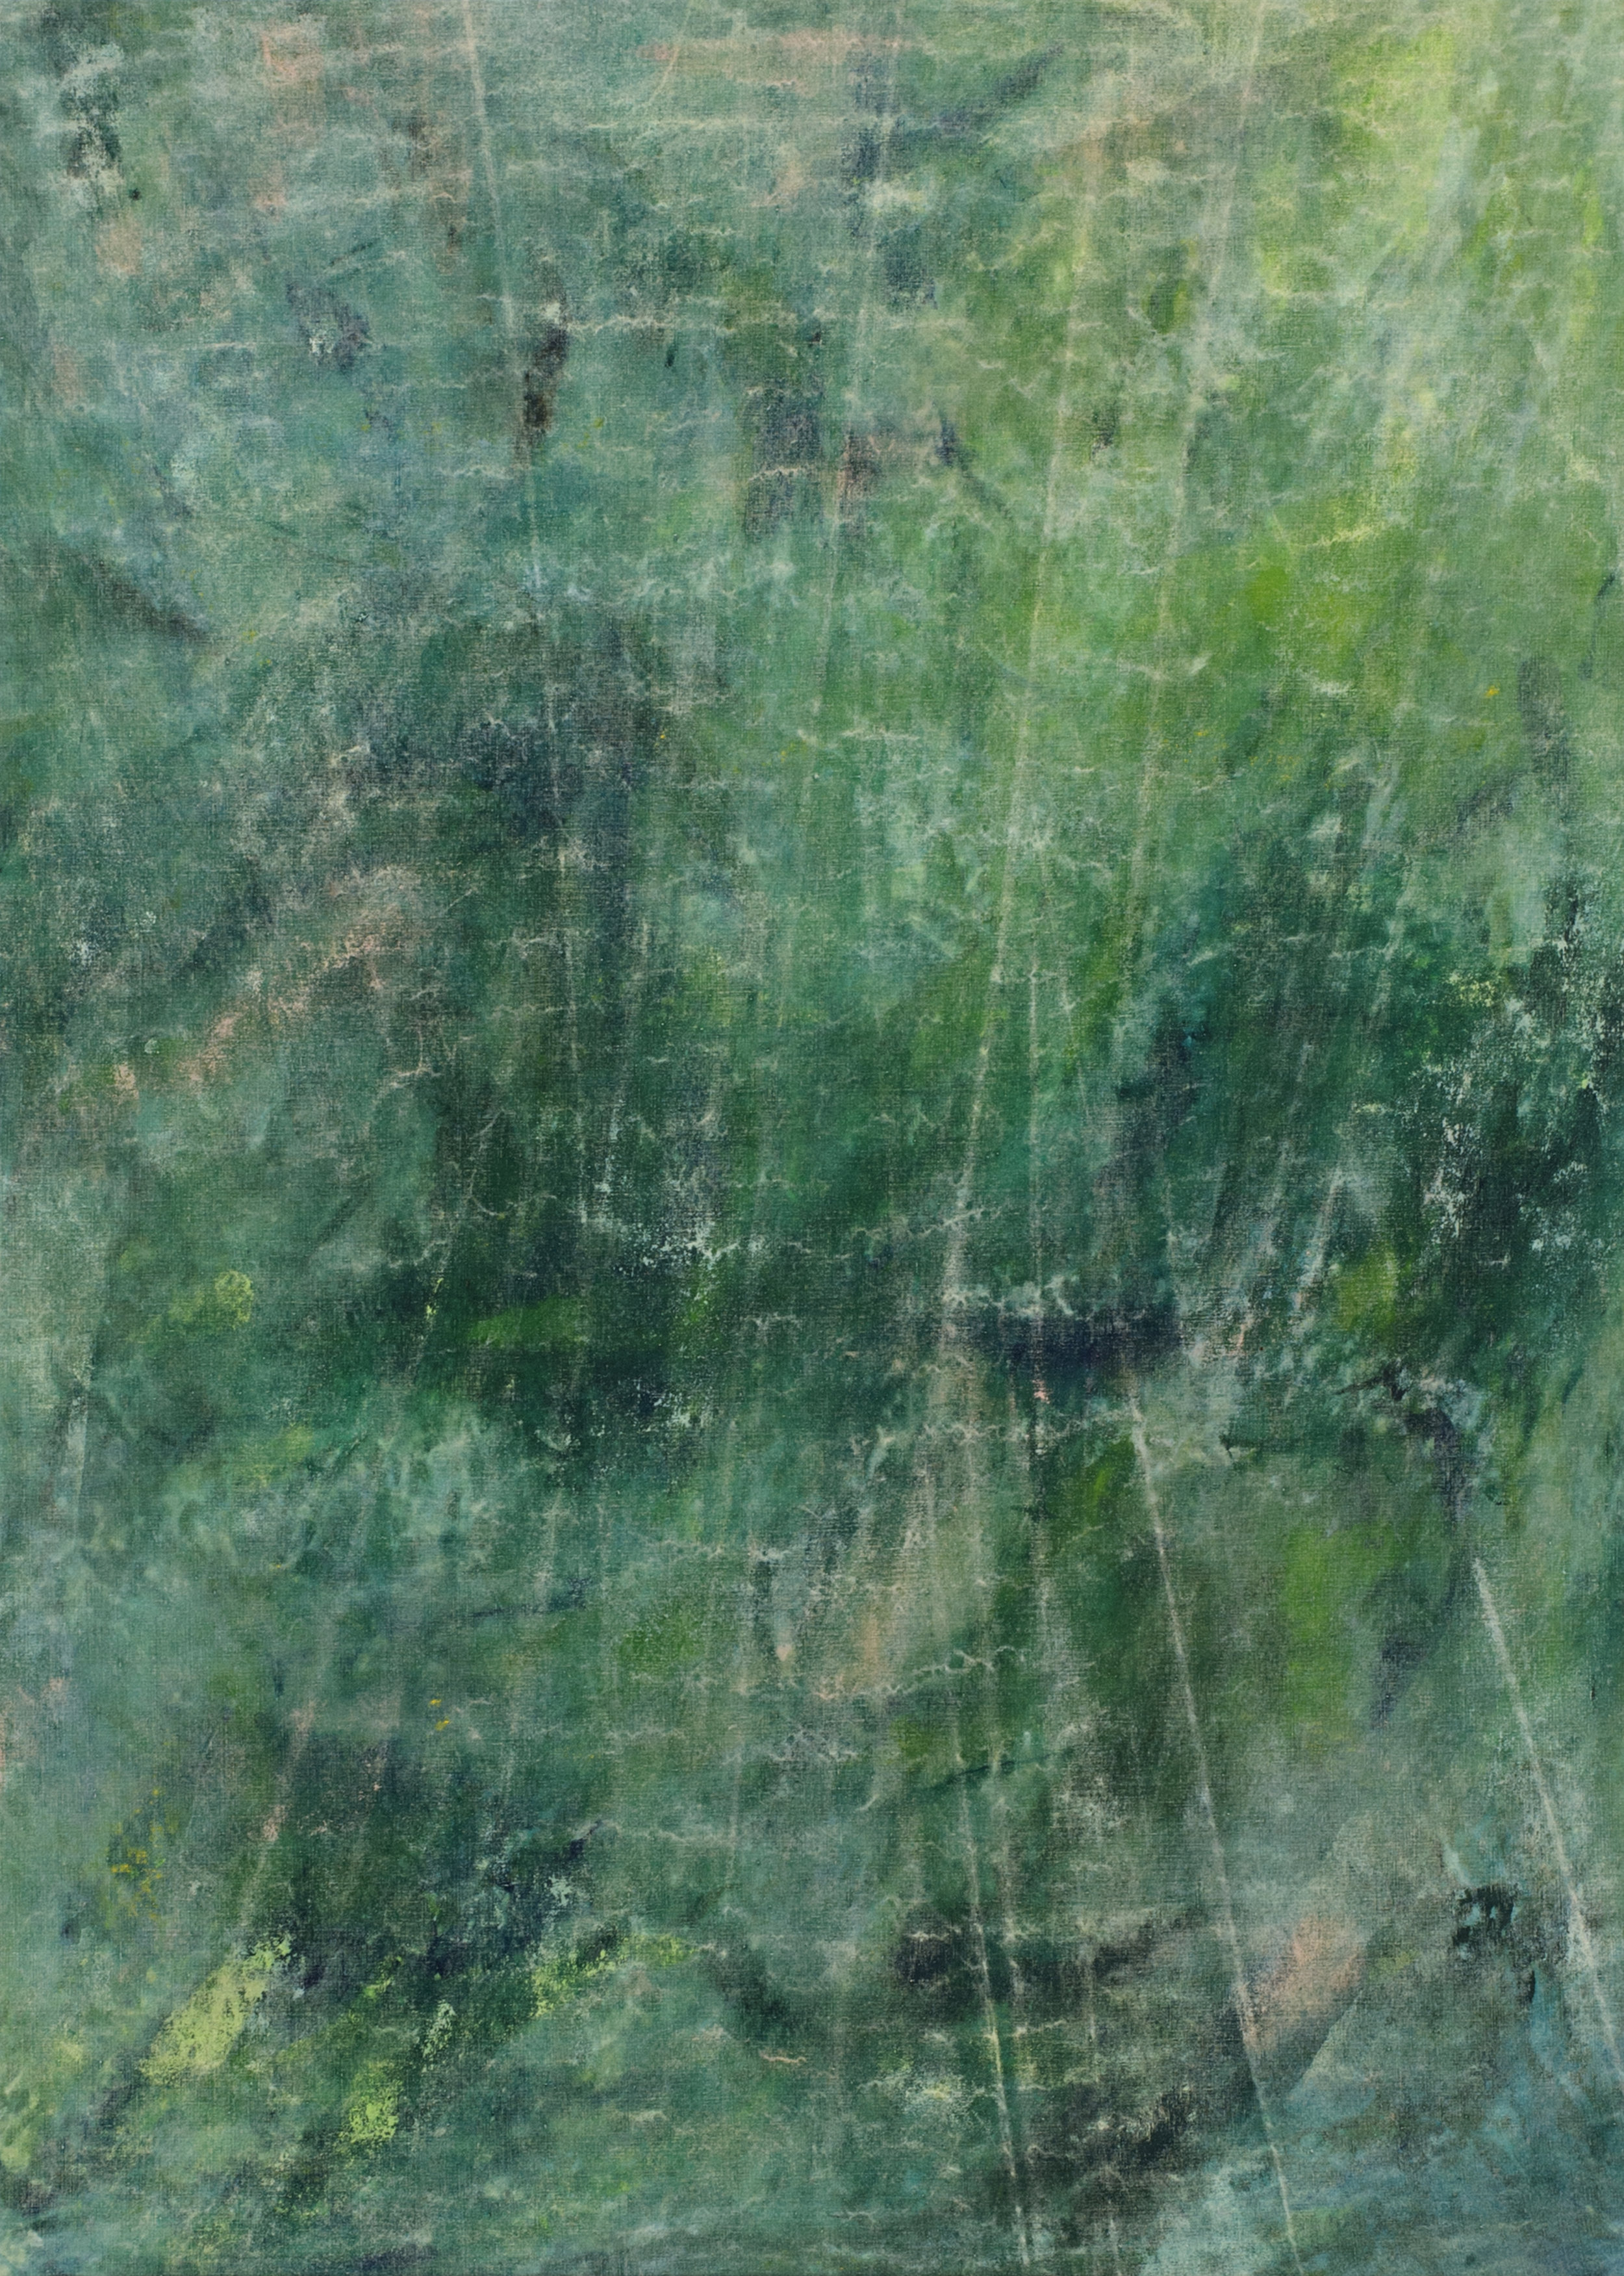 """at the journey's end, the map described with those words of magic: """"Forest"""" and """"Unexplored""""  2018 mixed media on linen 68 x 48""""   INQUIRE"""